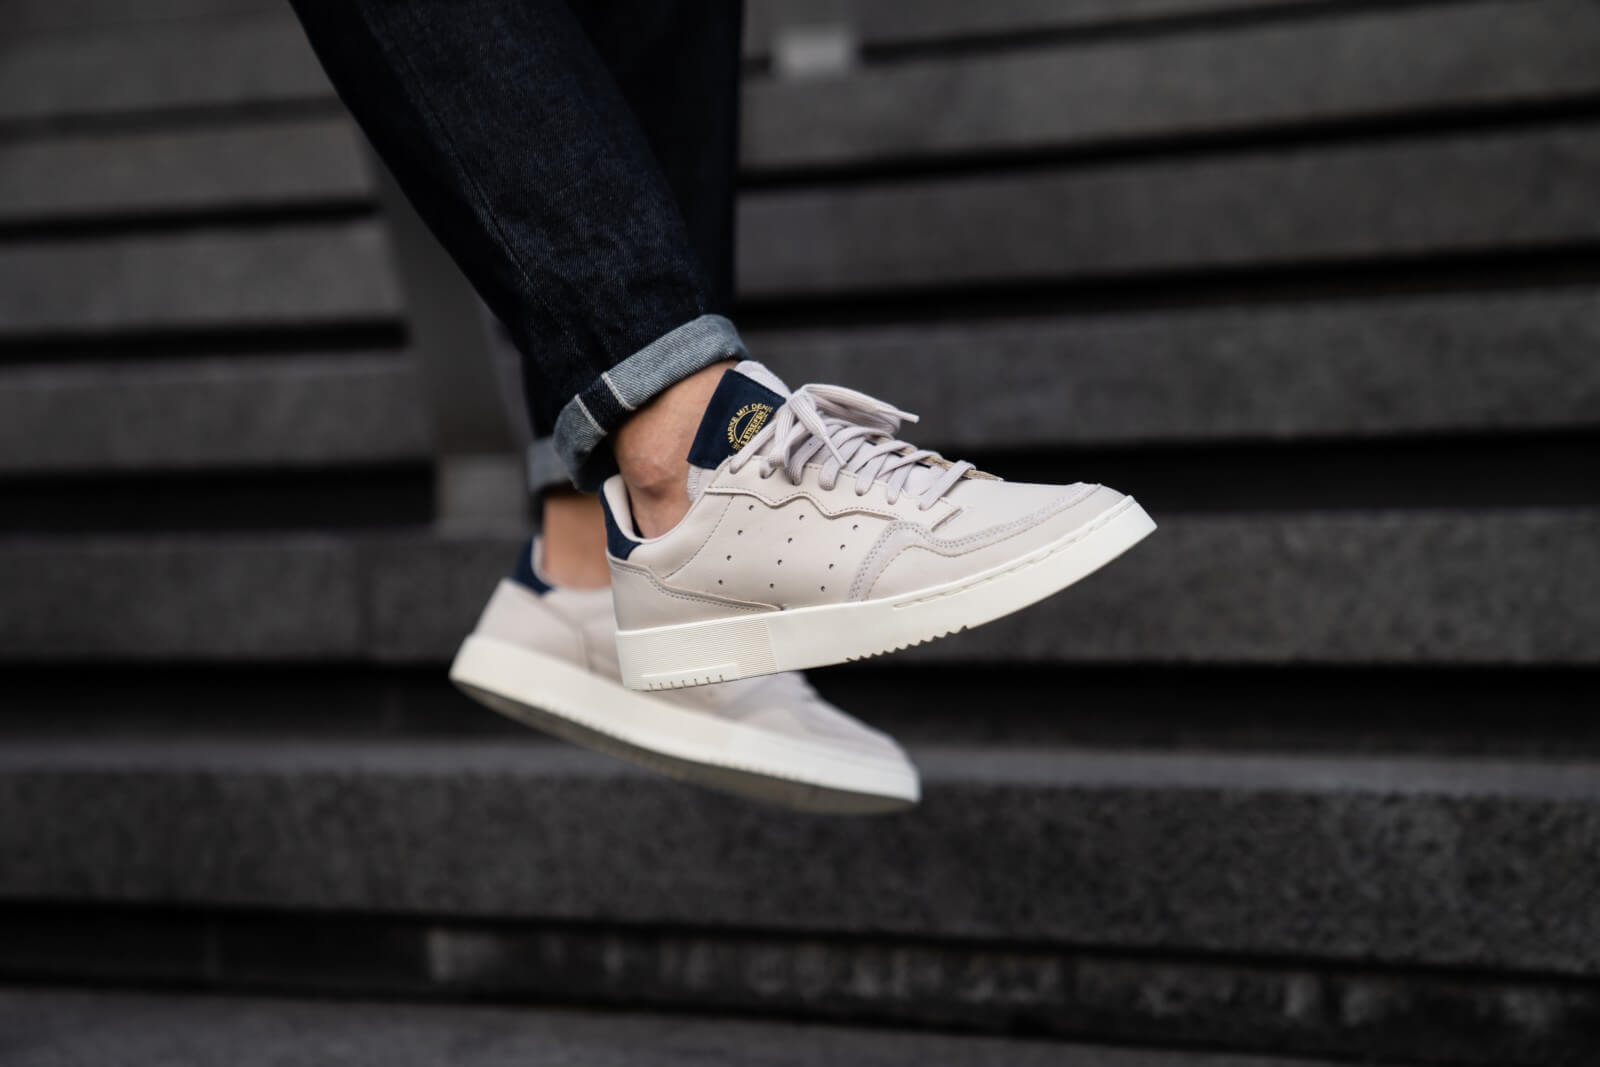 Adidas Supercourt Clear Brown/Collegiate Navy - EE6035